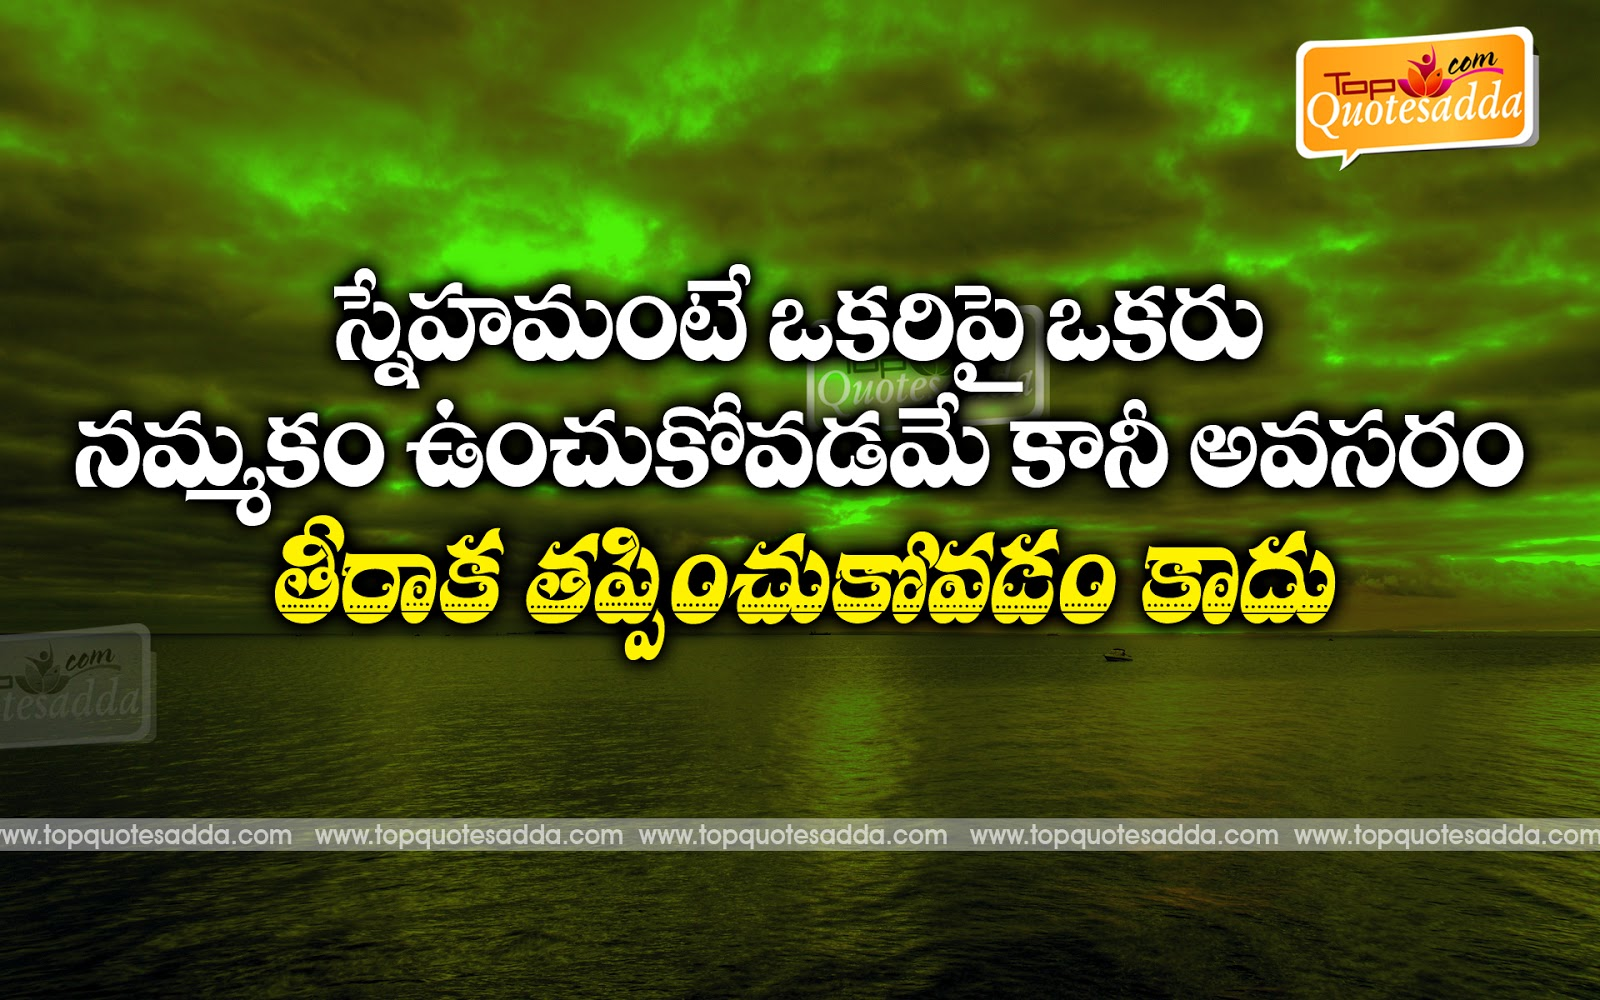 Famous Telugu Quotes And Sayings On Friendship Topquotesadda